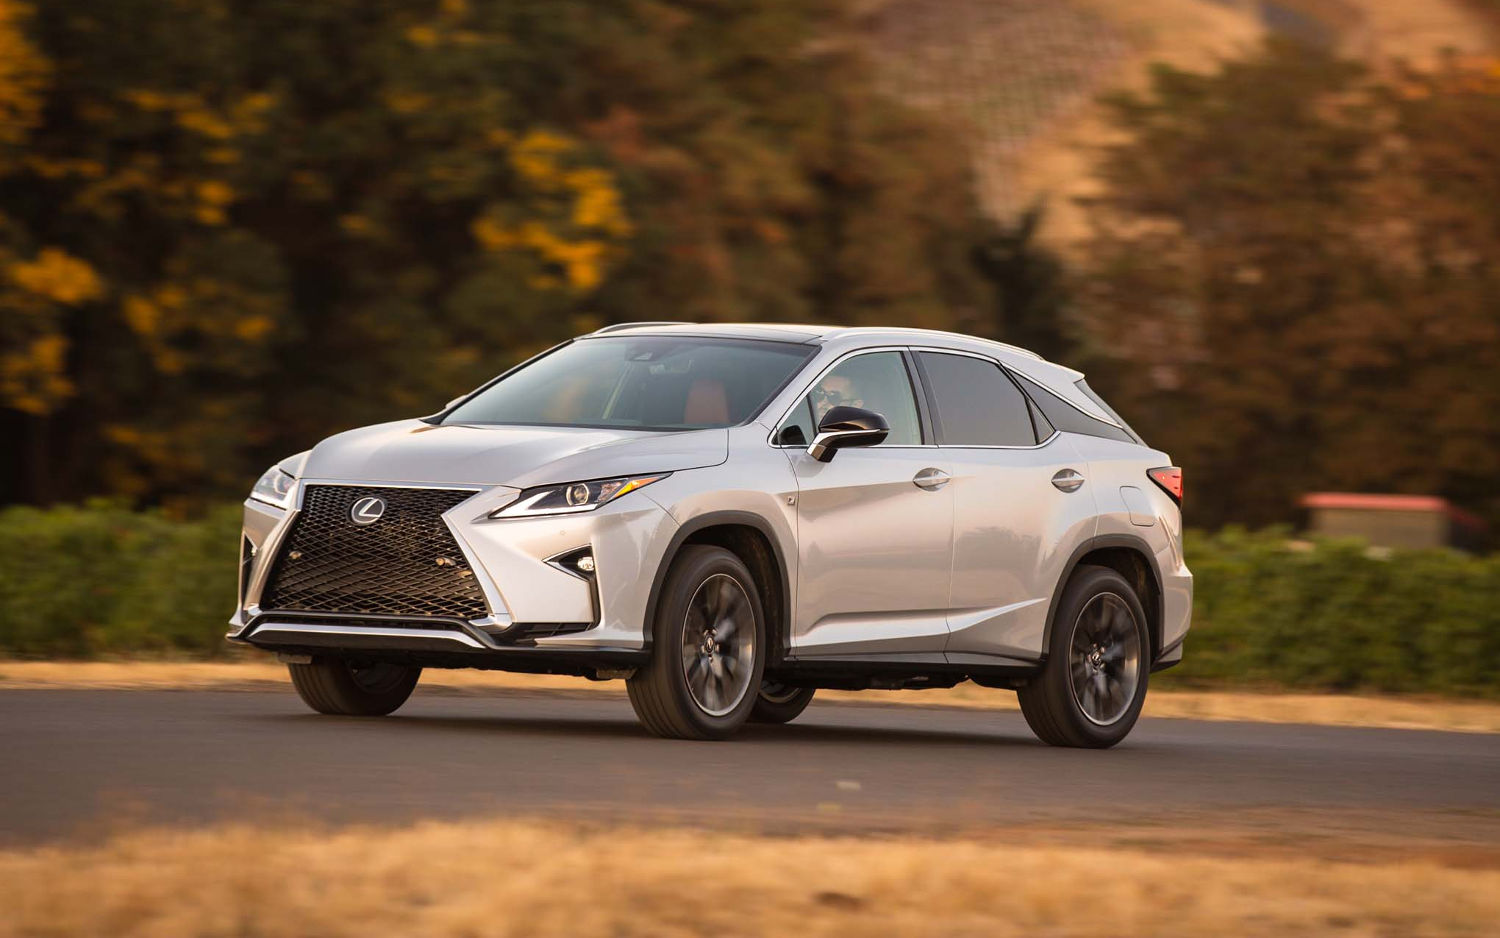 Rdx Vs Crv >> Comparison - Lexus RX 350 F sport 2017 - vs - Honda CR-V ...